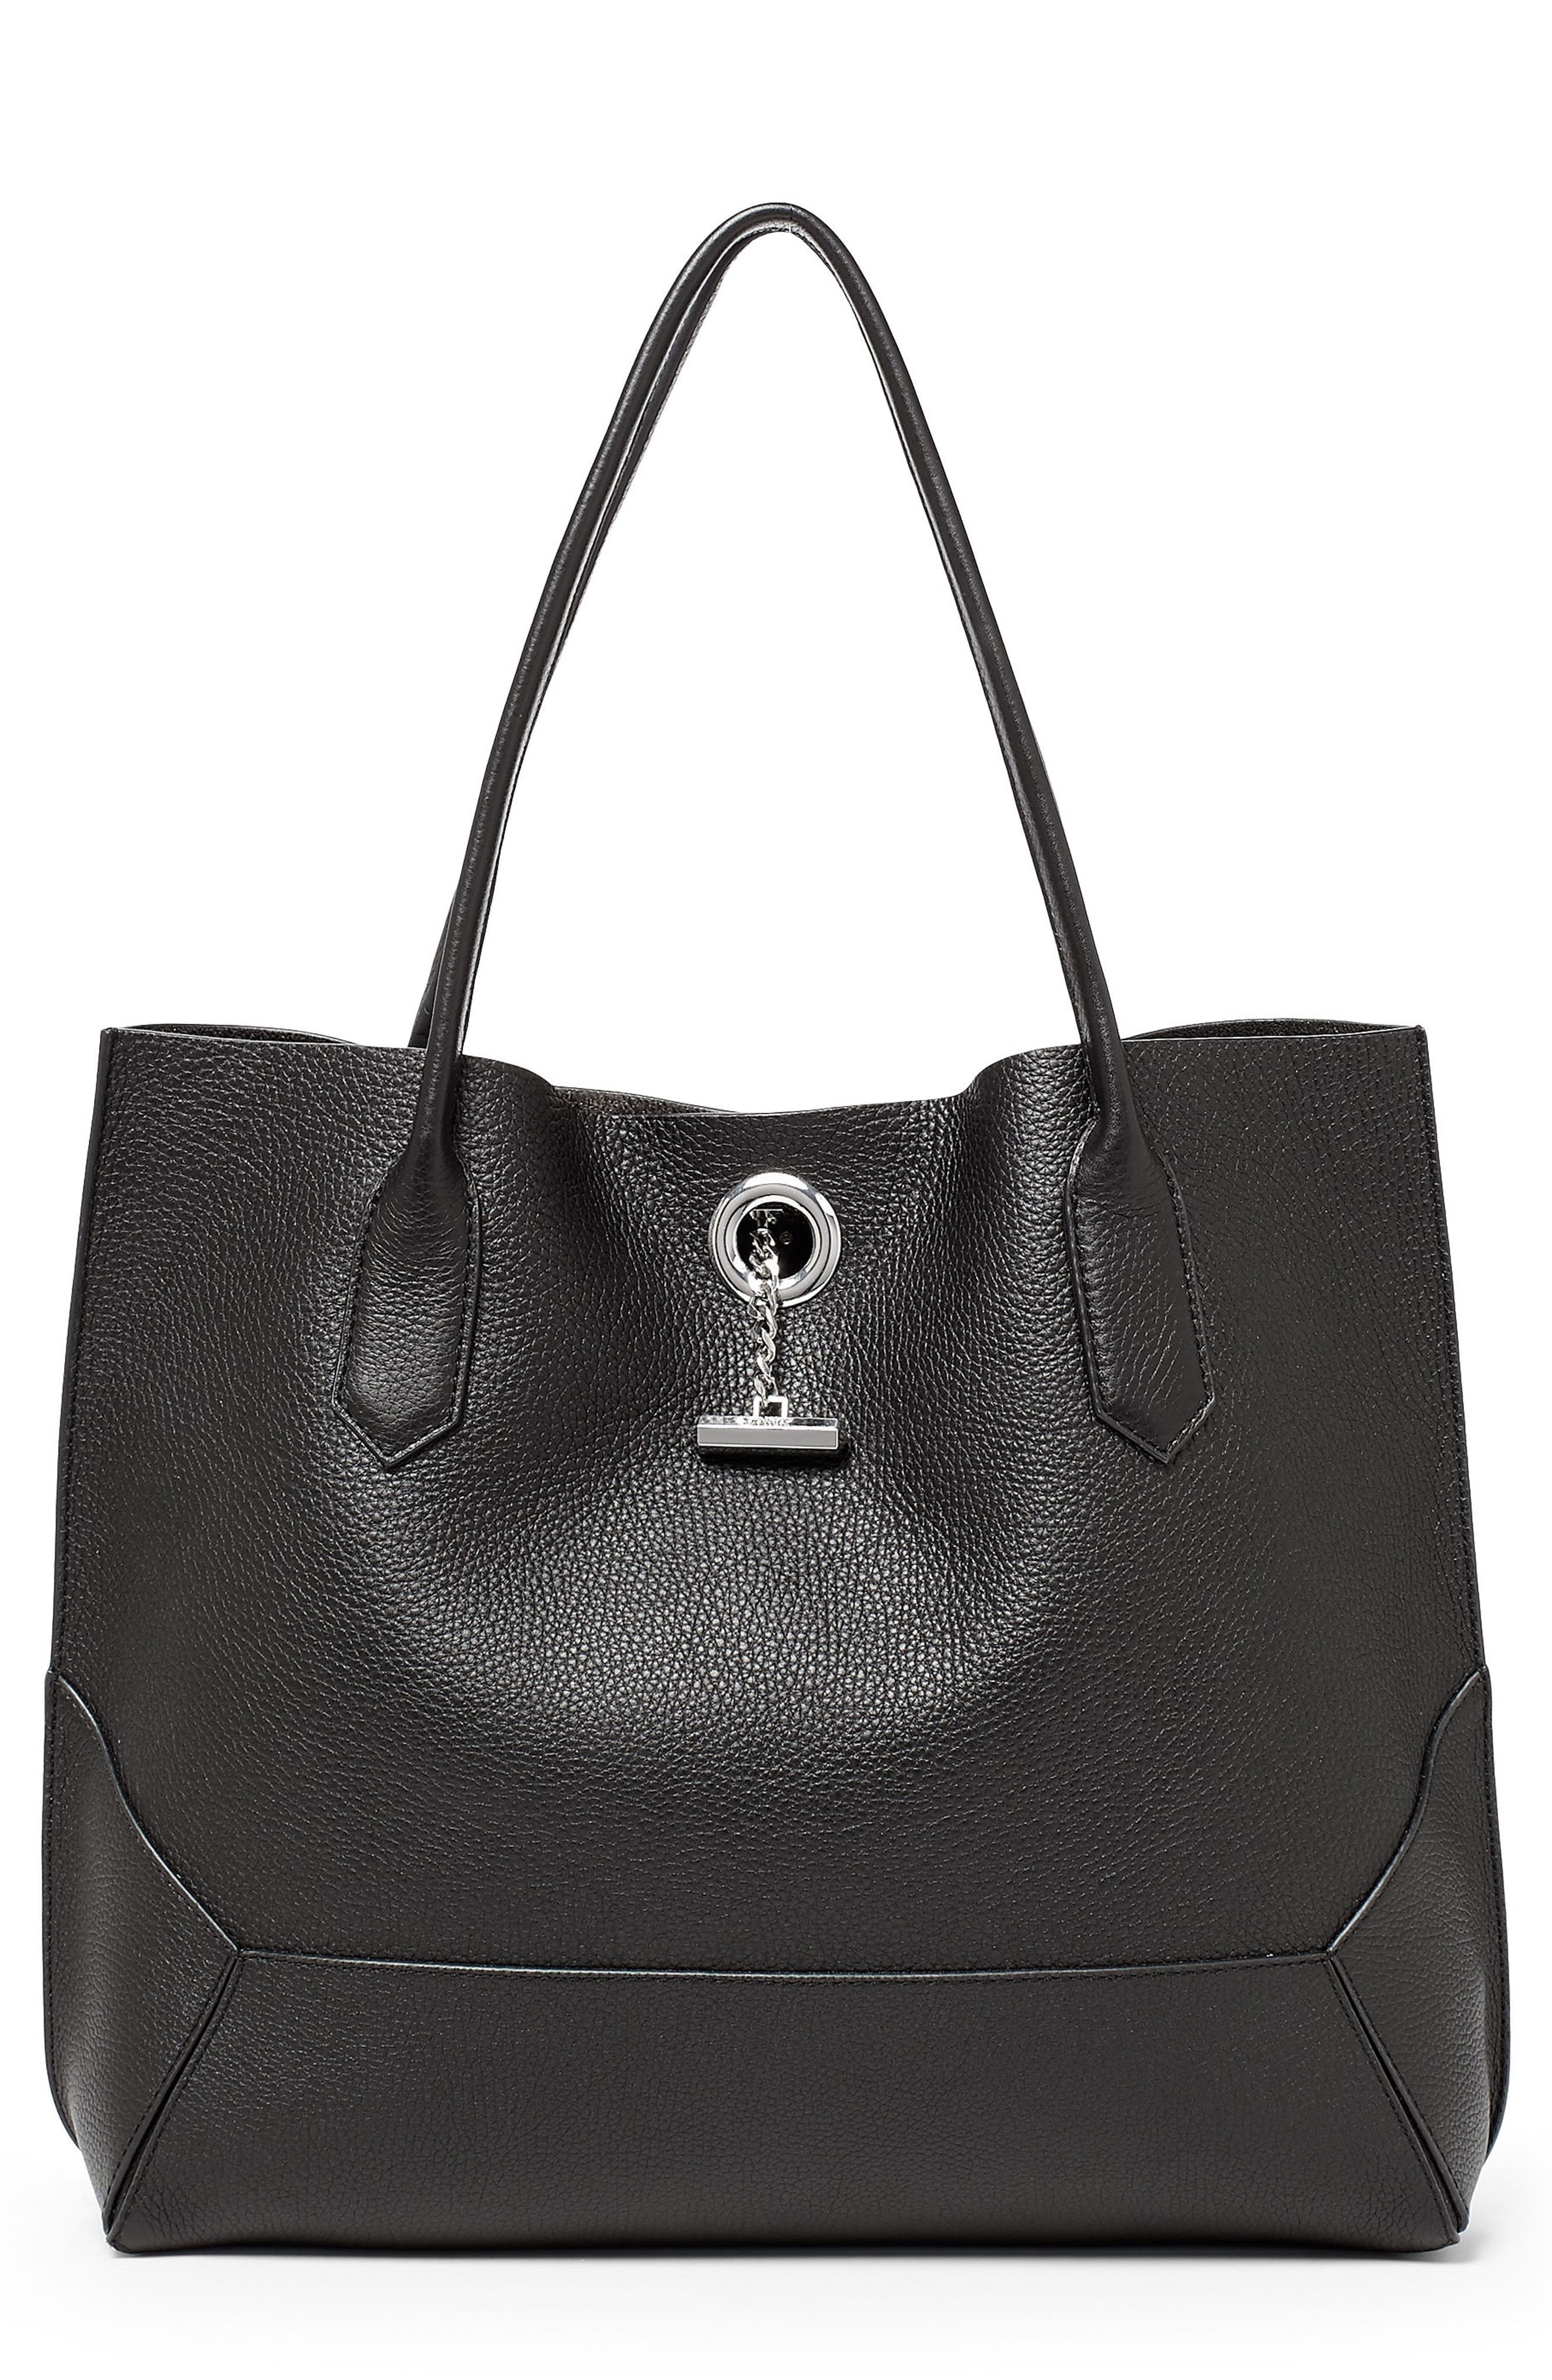 Main Image - Botkier Waverly Leather Tote